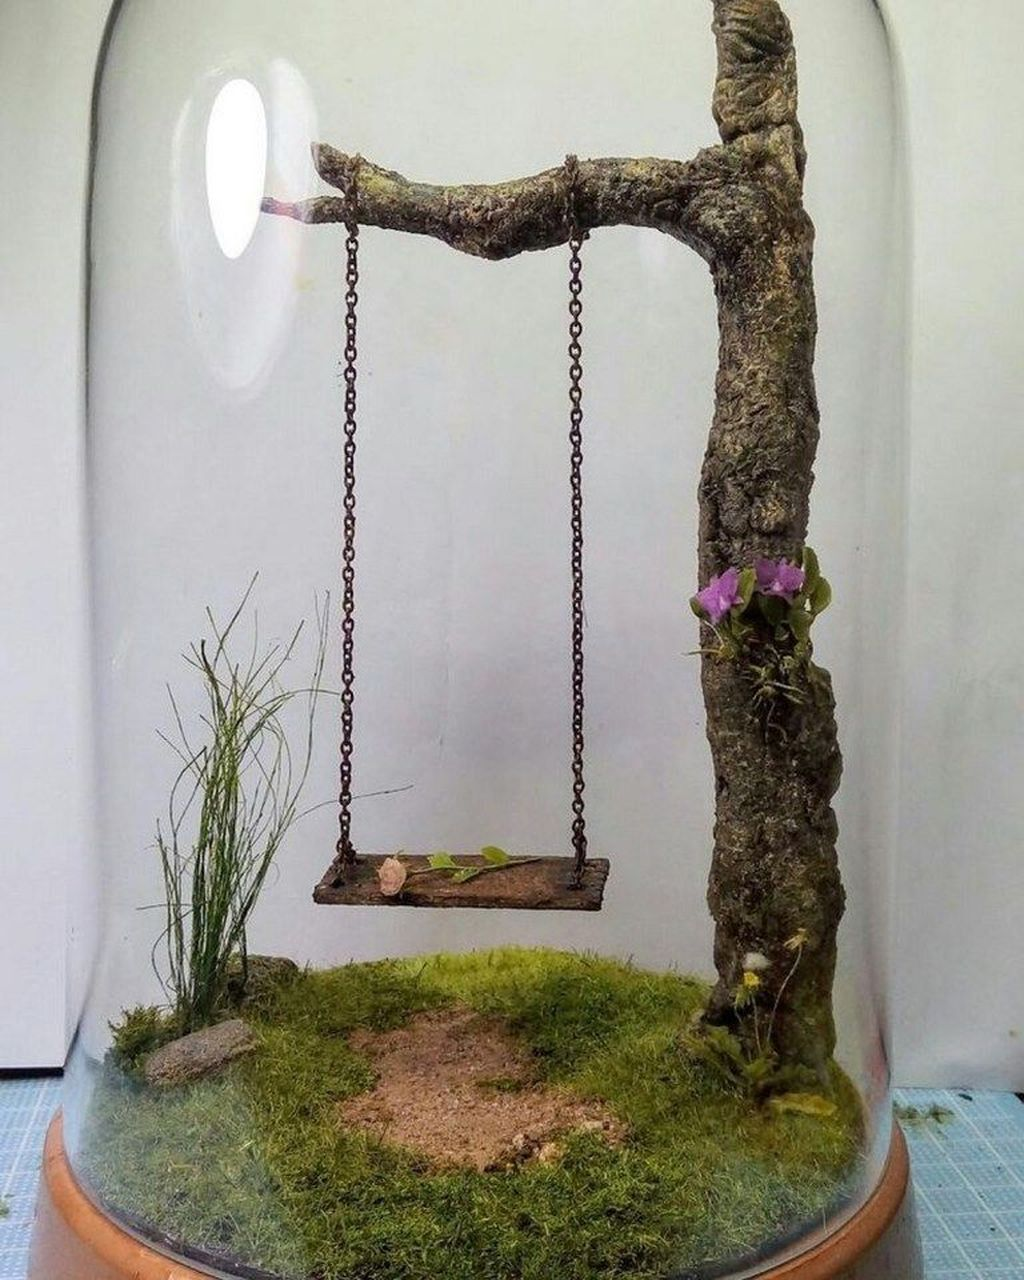 50 Comfy Fairy Garden Design Ideas For Simple And Low Cost